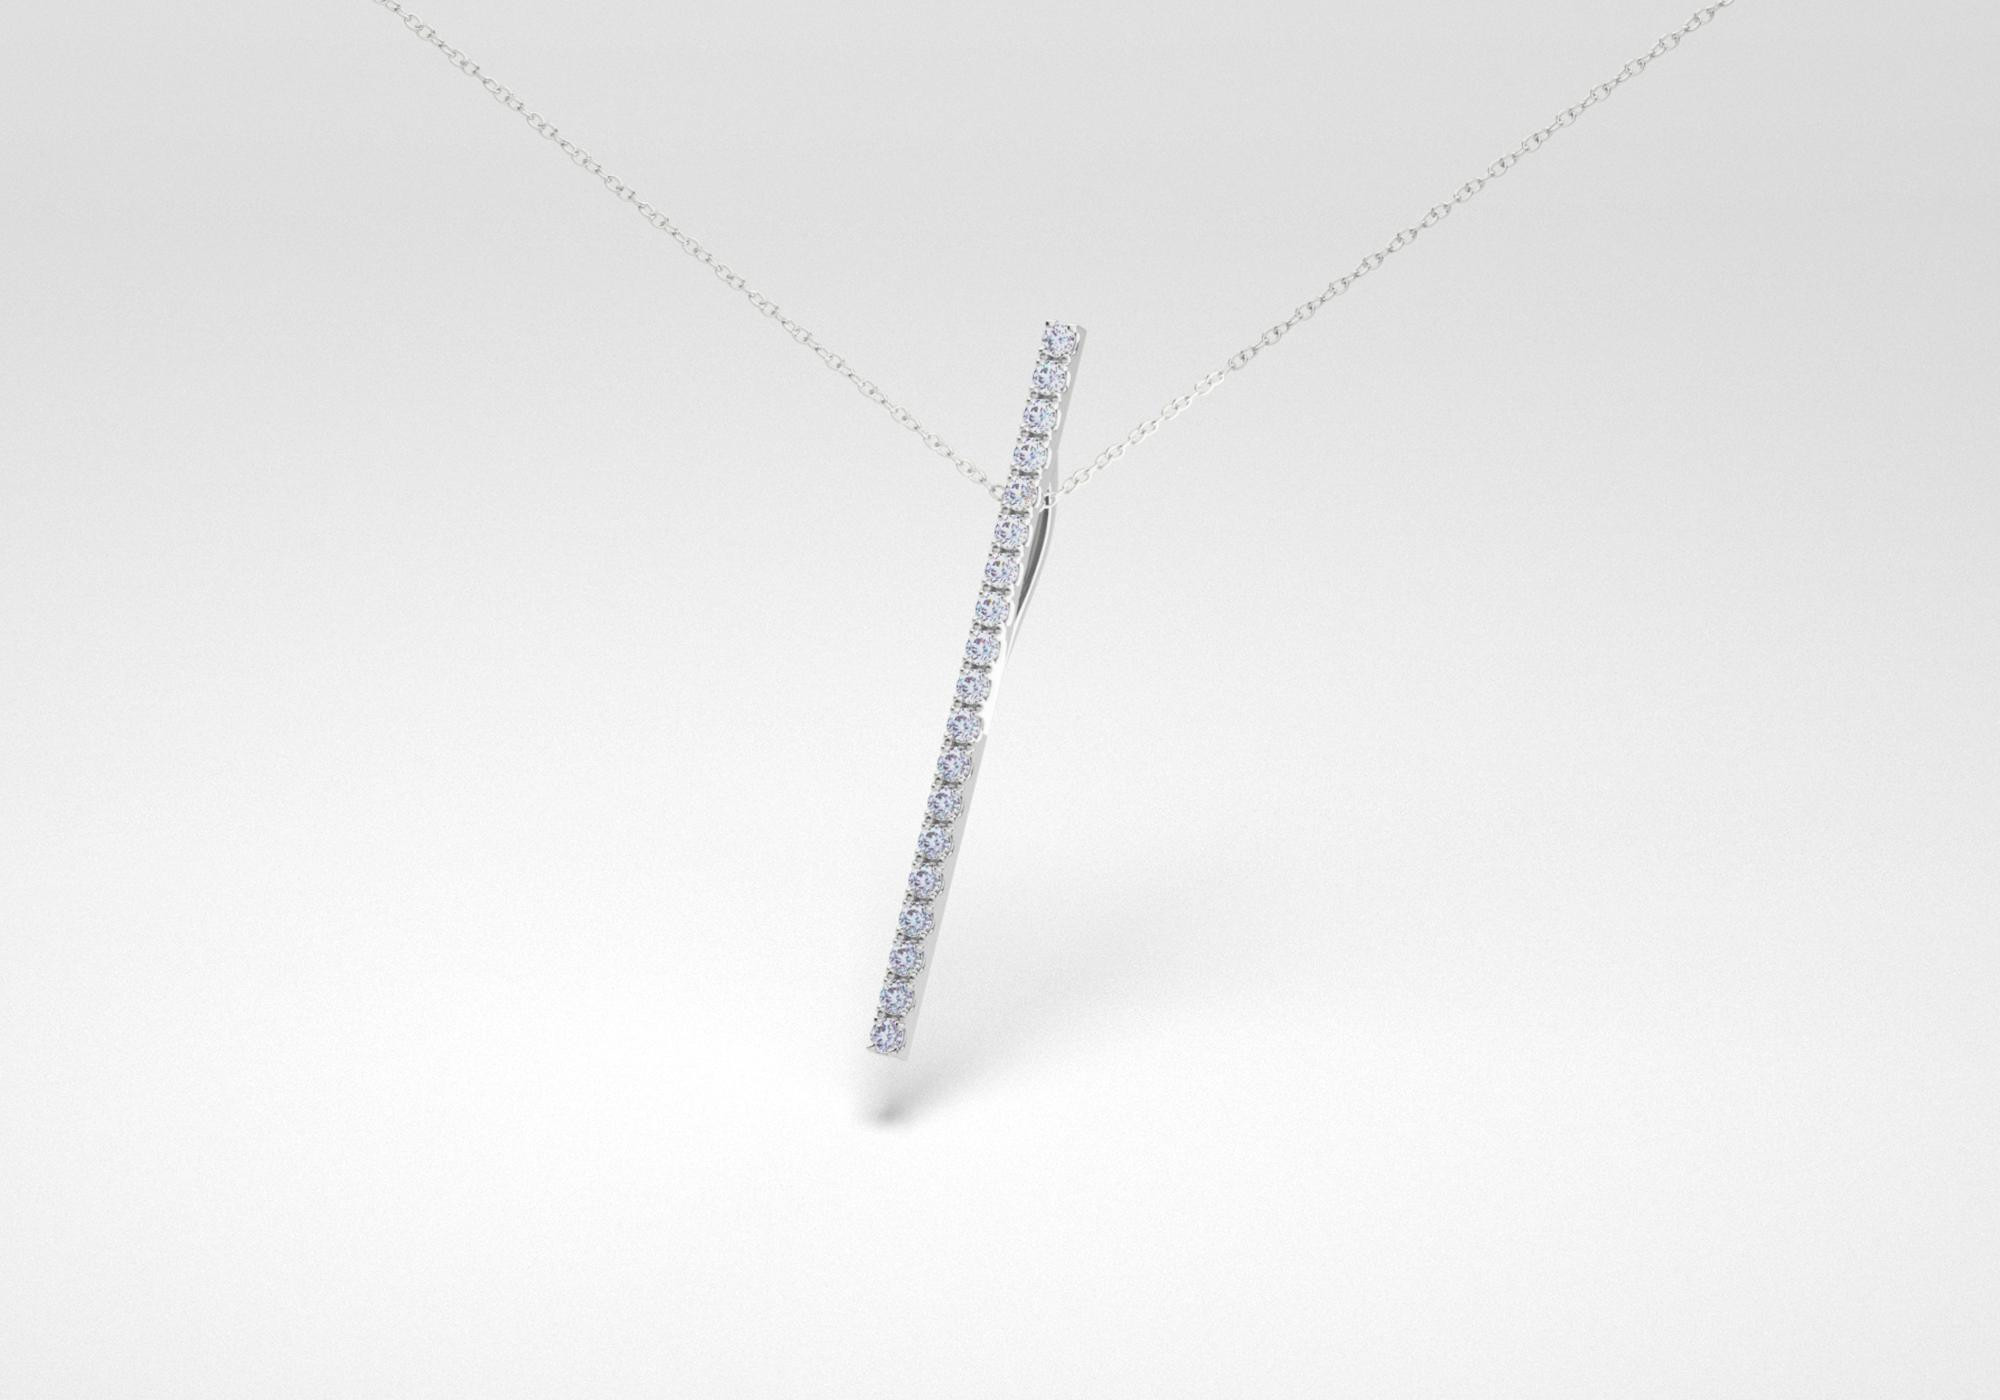 The Line Necklace - Steel - White Gold 18 Kt